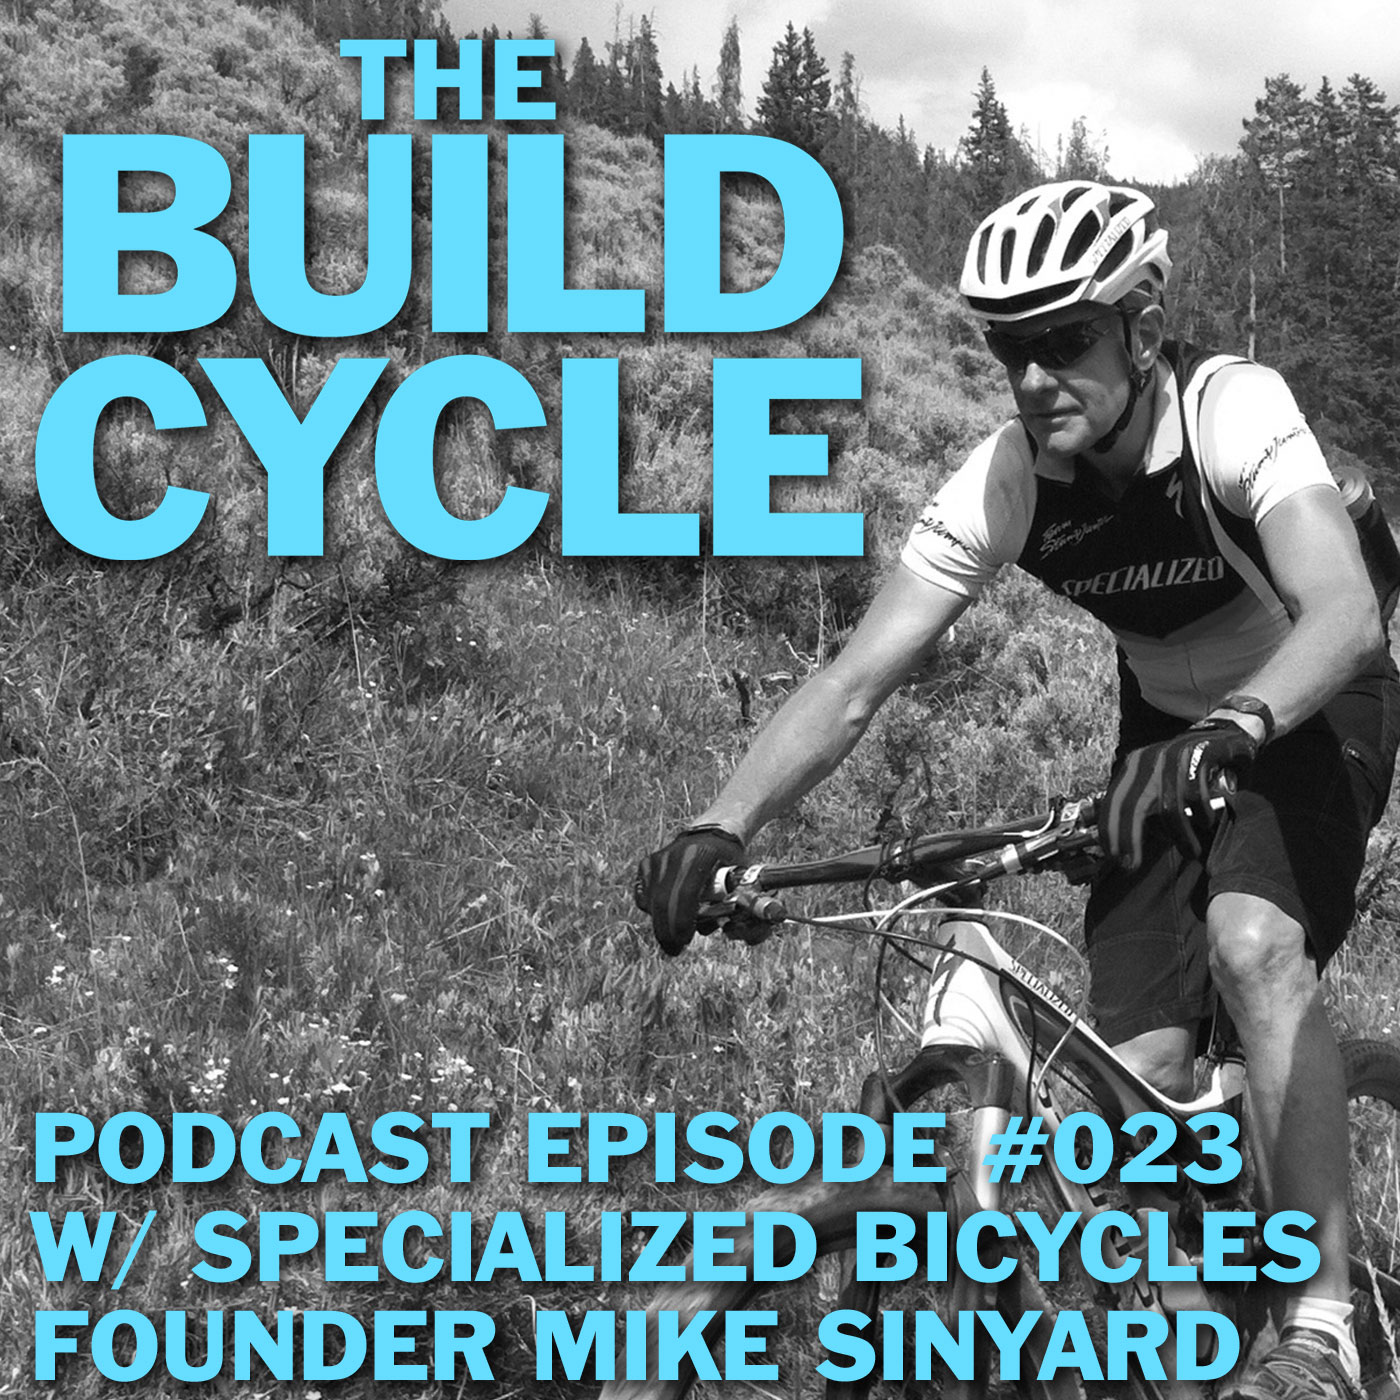 Ep #023 - How to Build a Global Brand w/ Specialized Bicycles founder Mike Sinyard